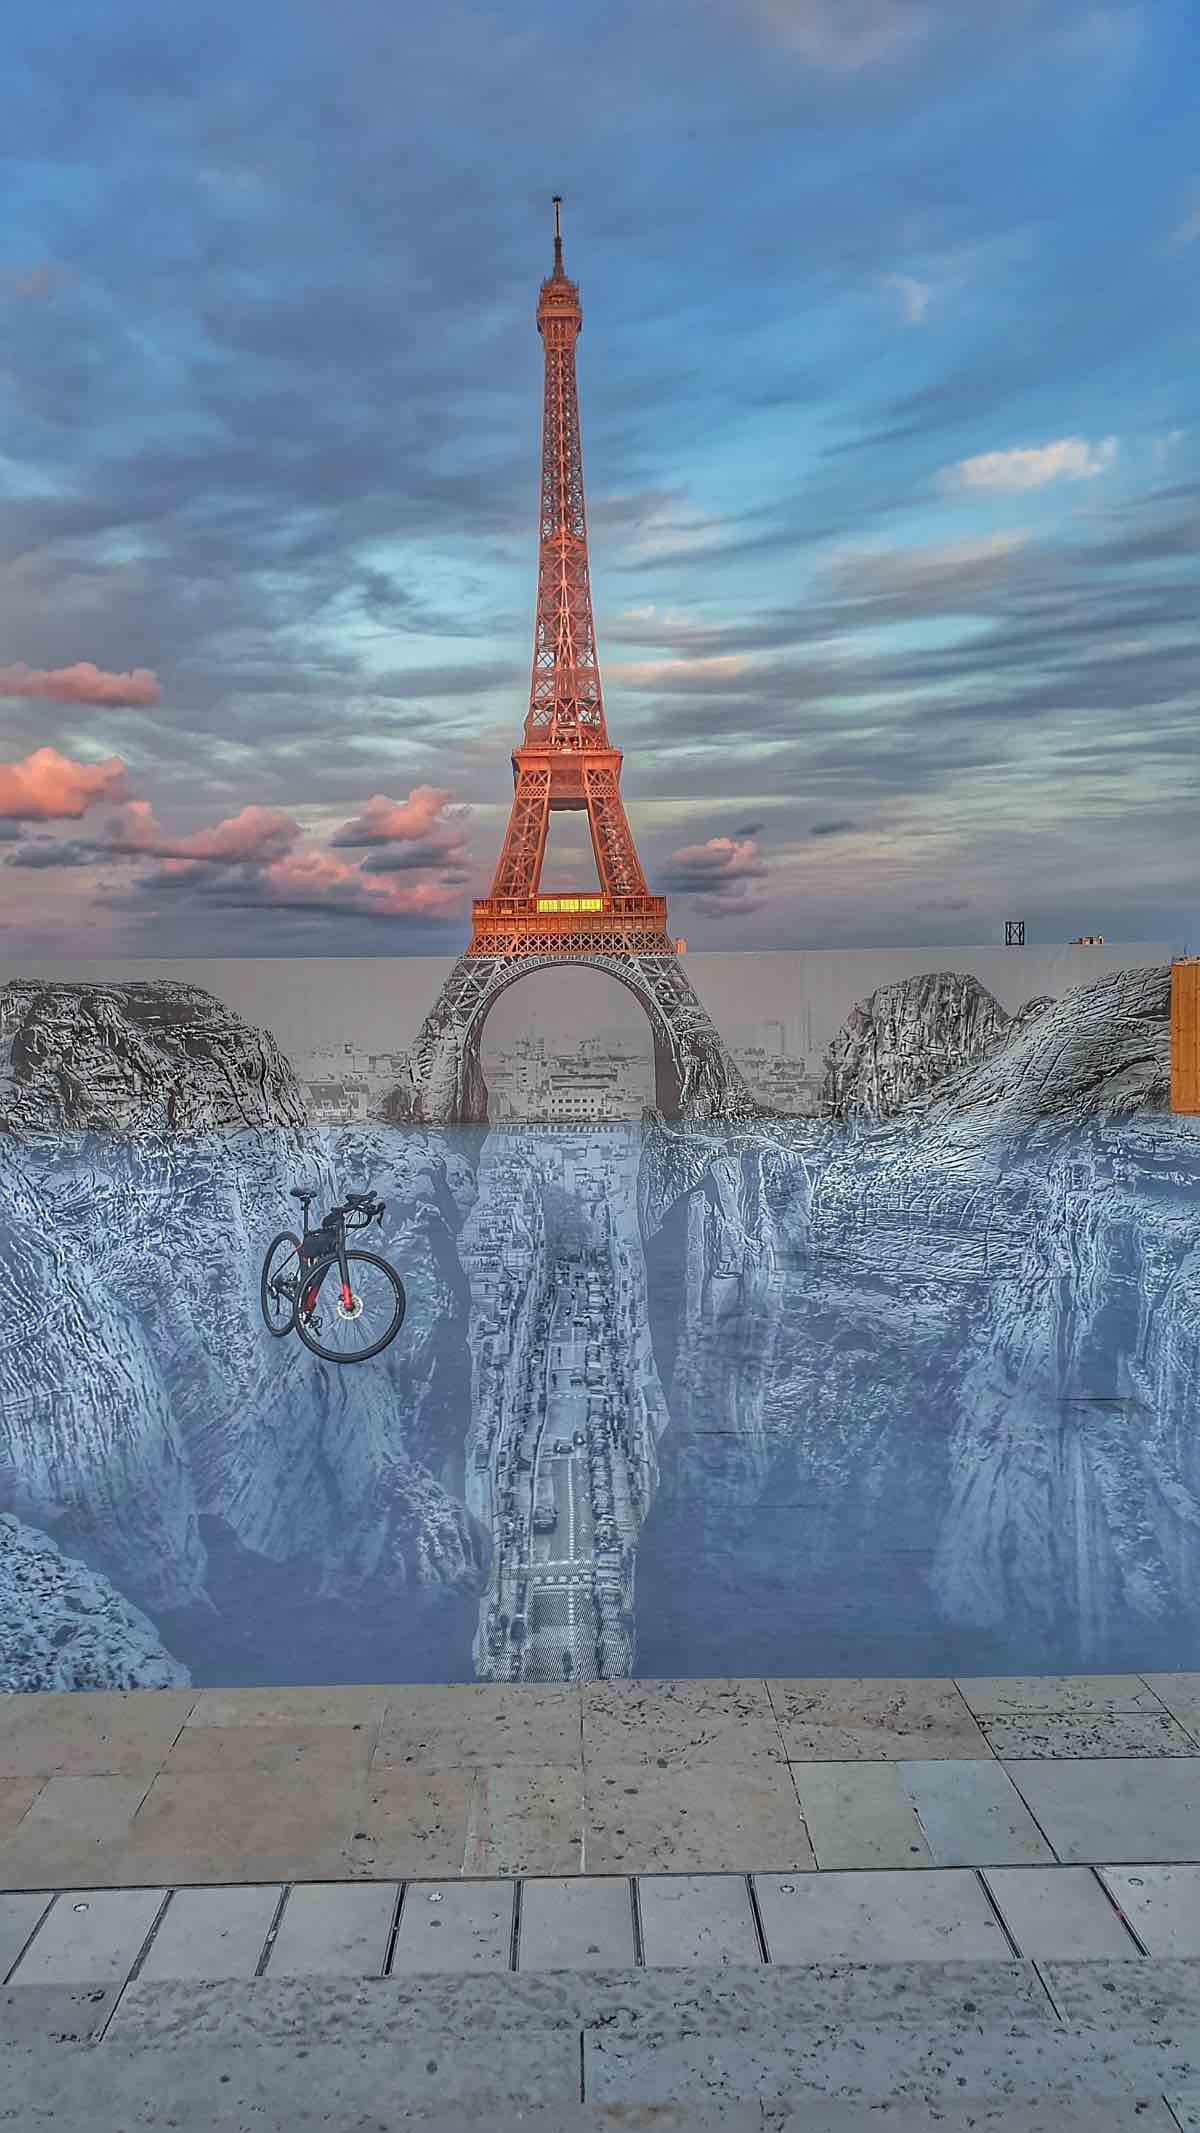 bikerumor pic of the day a specialized diverge seems to float above a scene anchored by the eiffel tower on street art created on the place du trocadero in paris france.